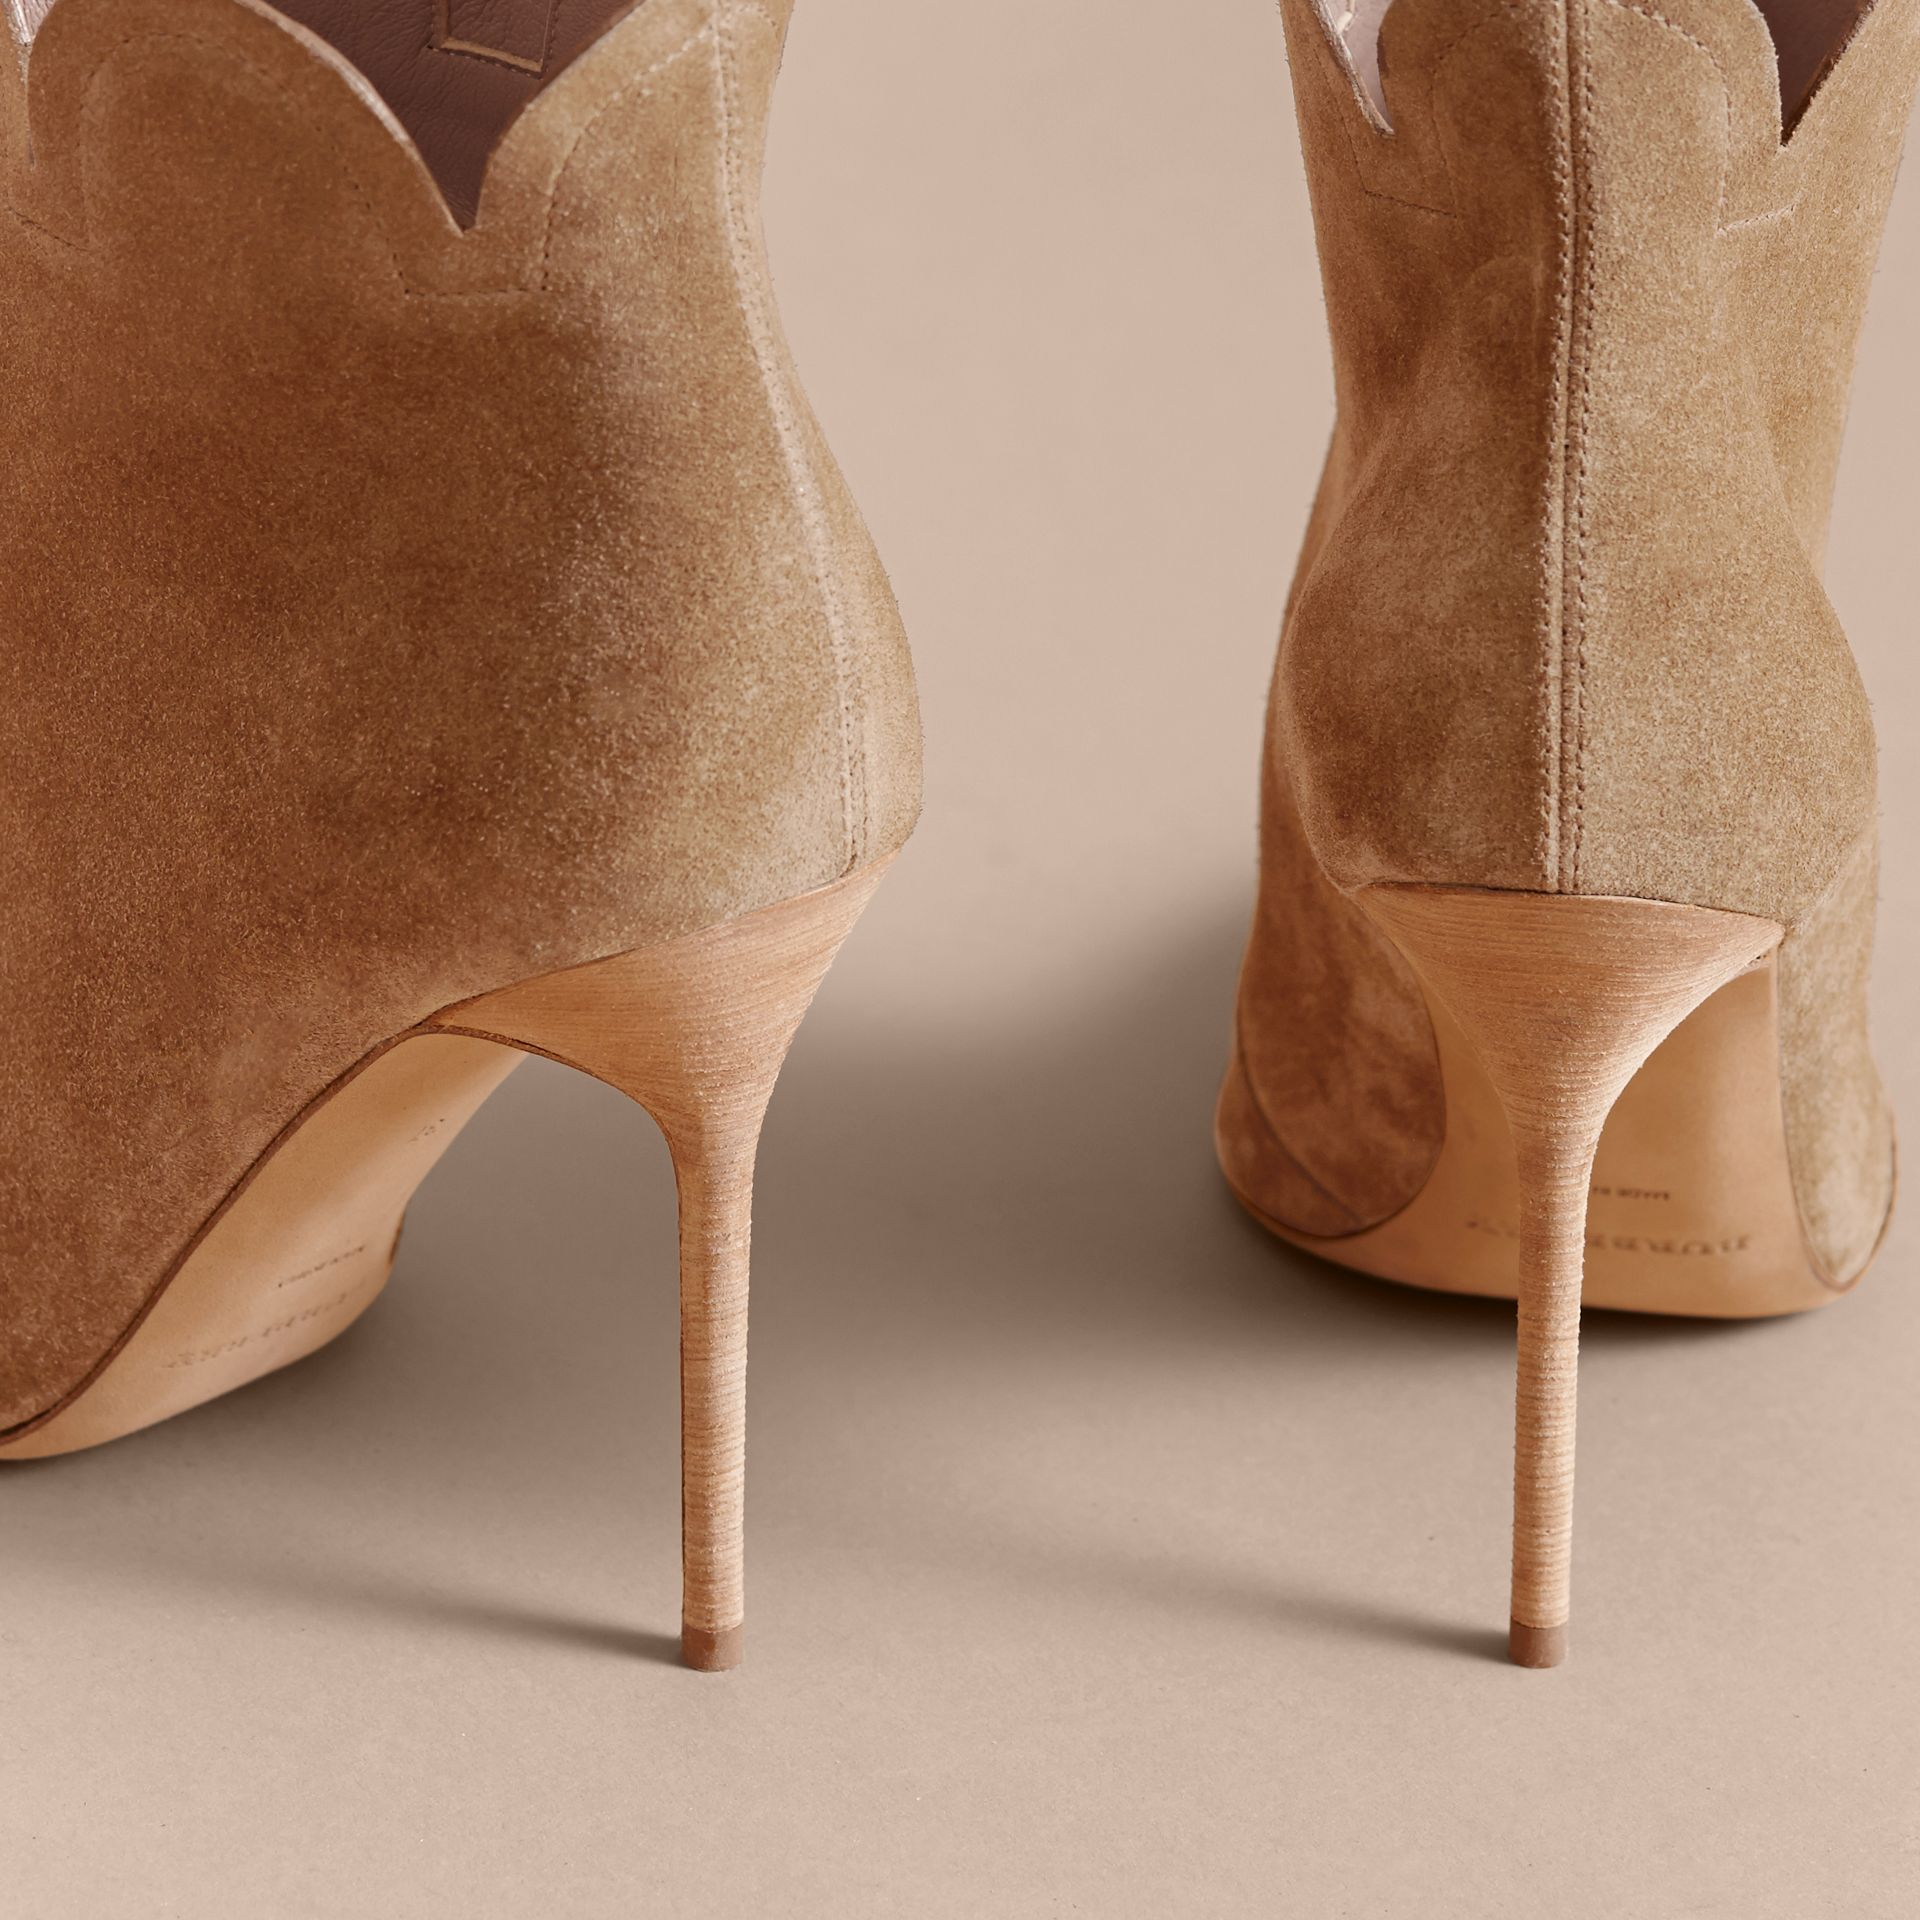 Scalloped Suede Ankle Boots in Sandstone - Women | Burberry - gallery image 4